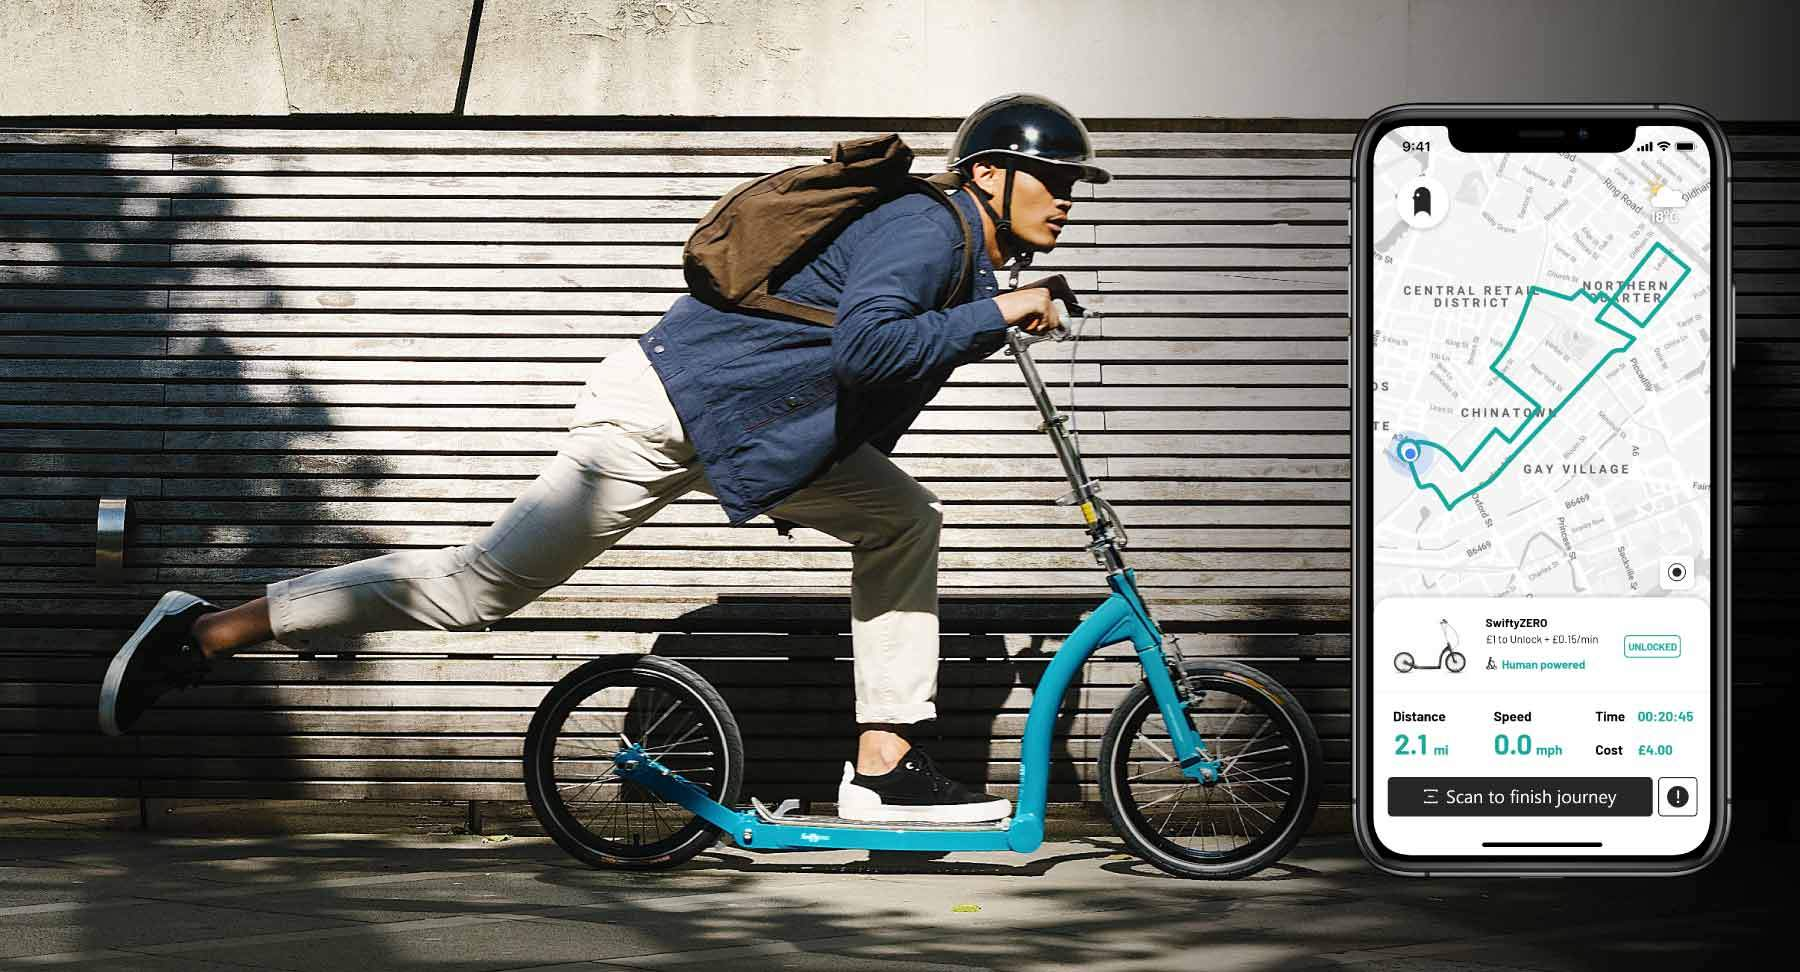 Adult kick scooter crowdfunding